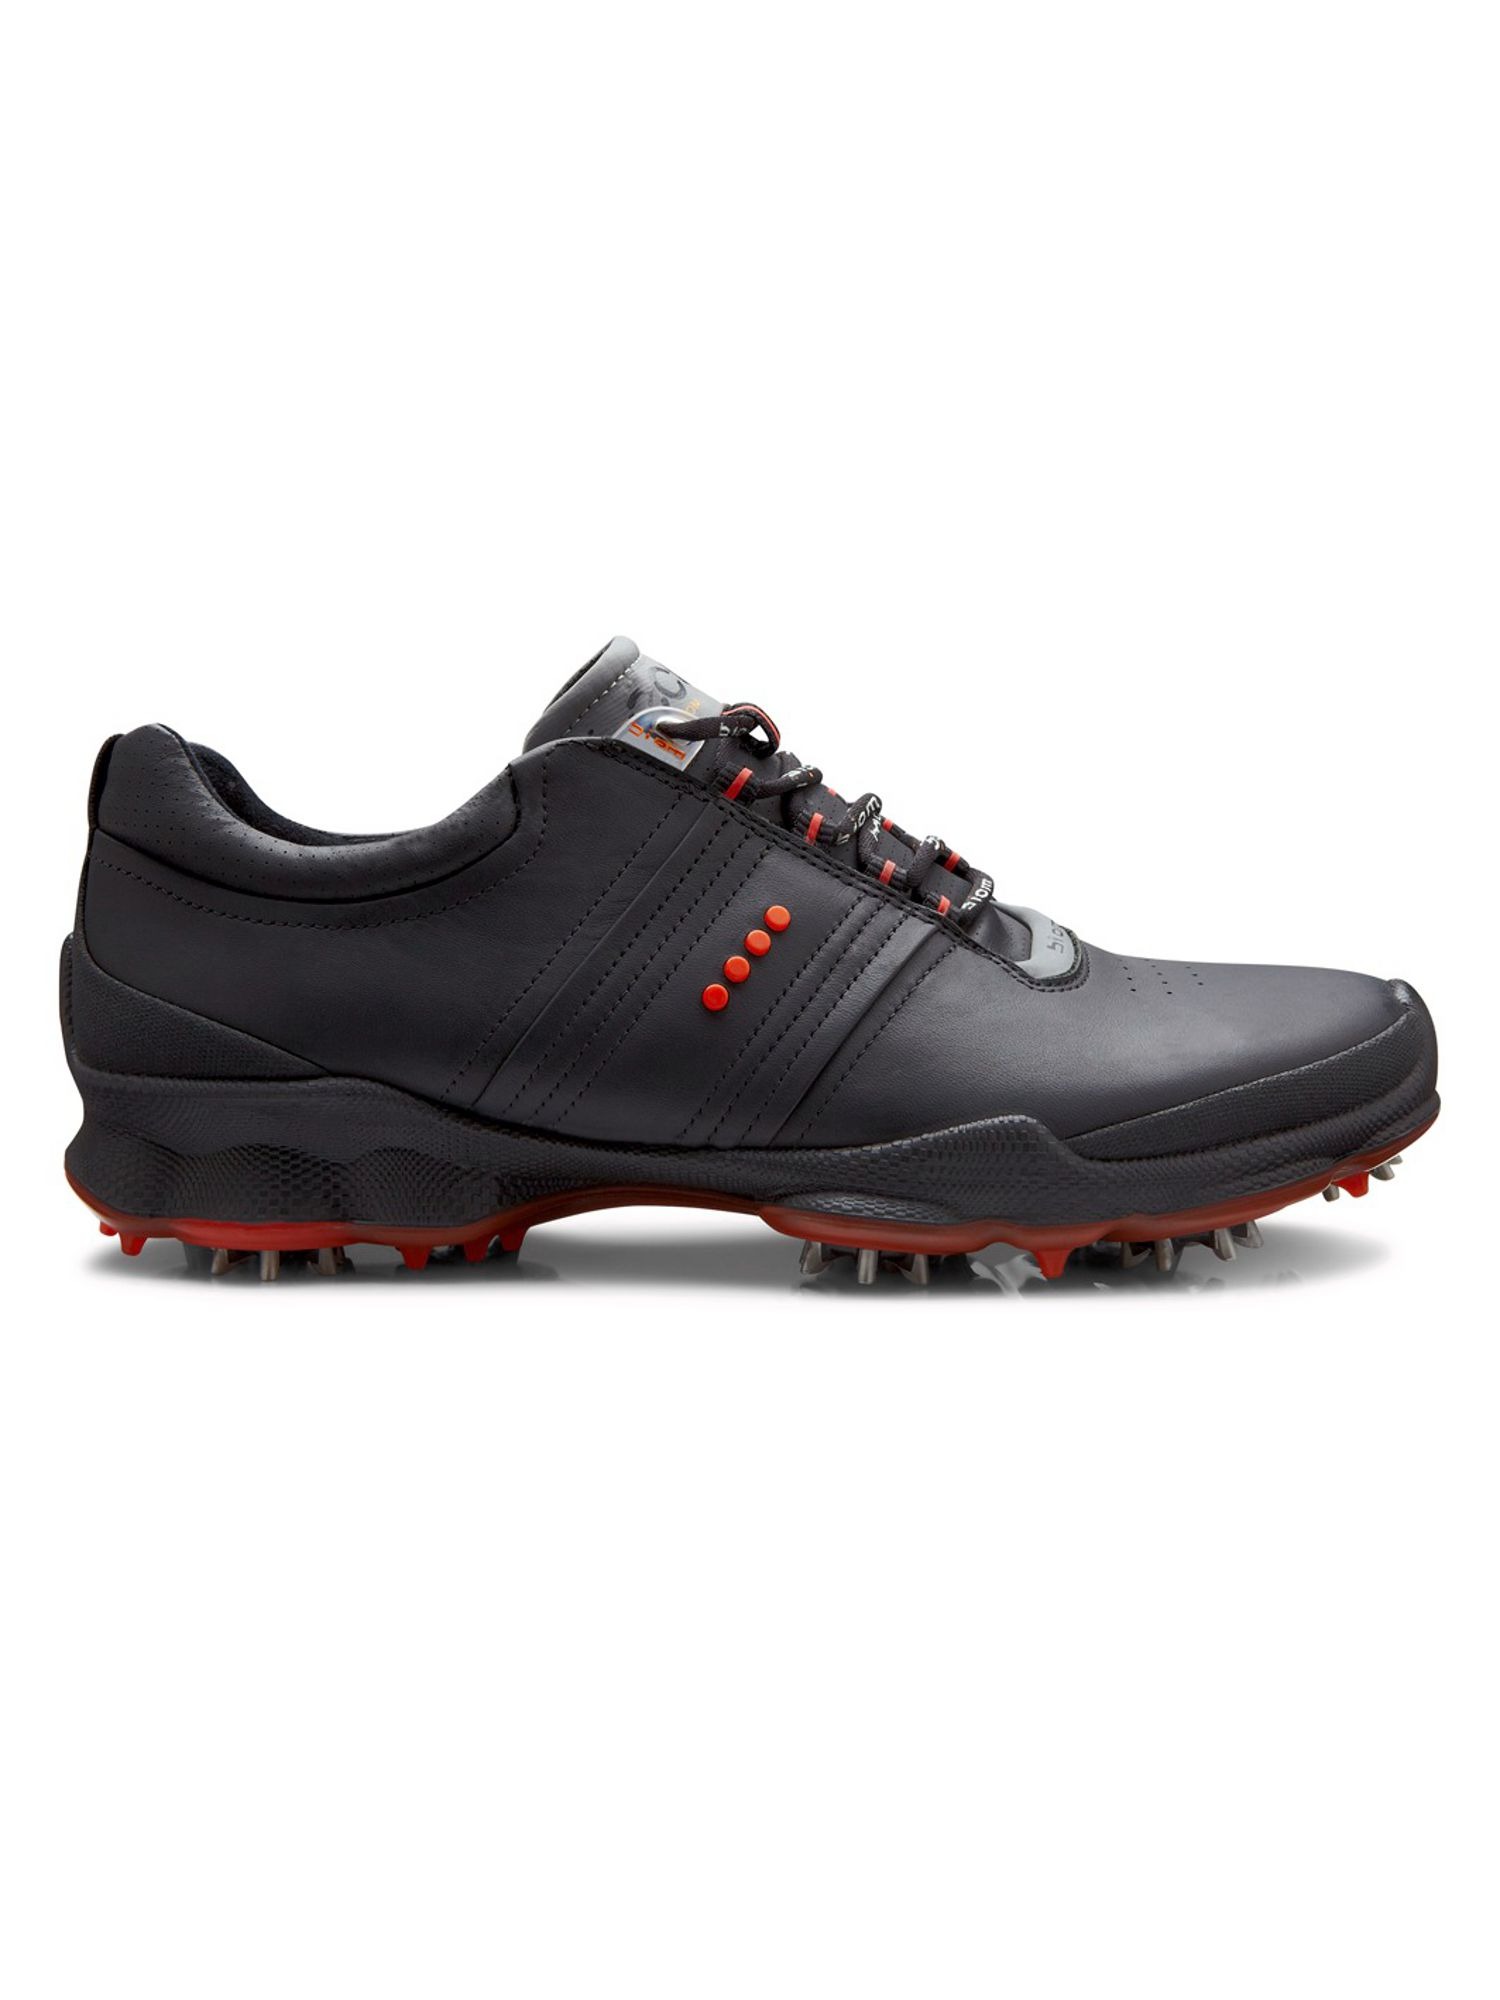 Biom golf shoes